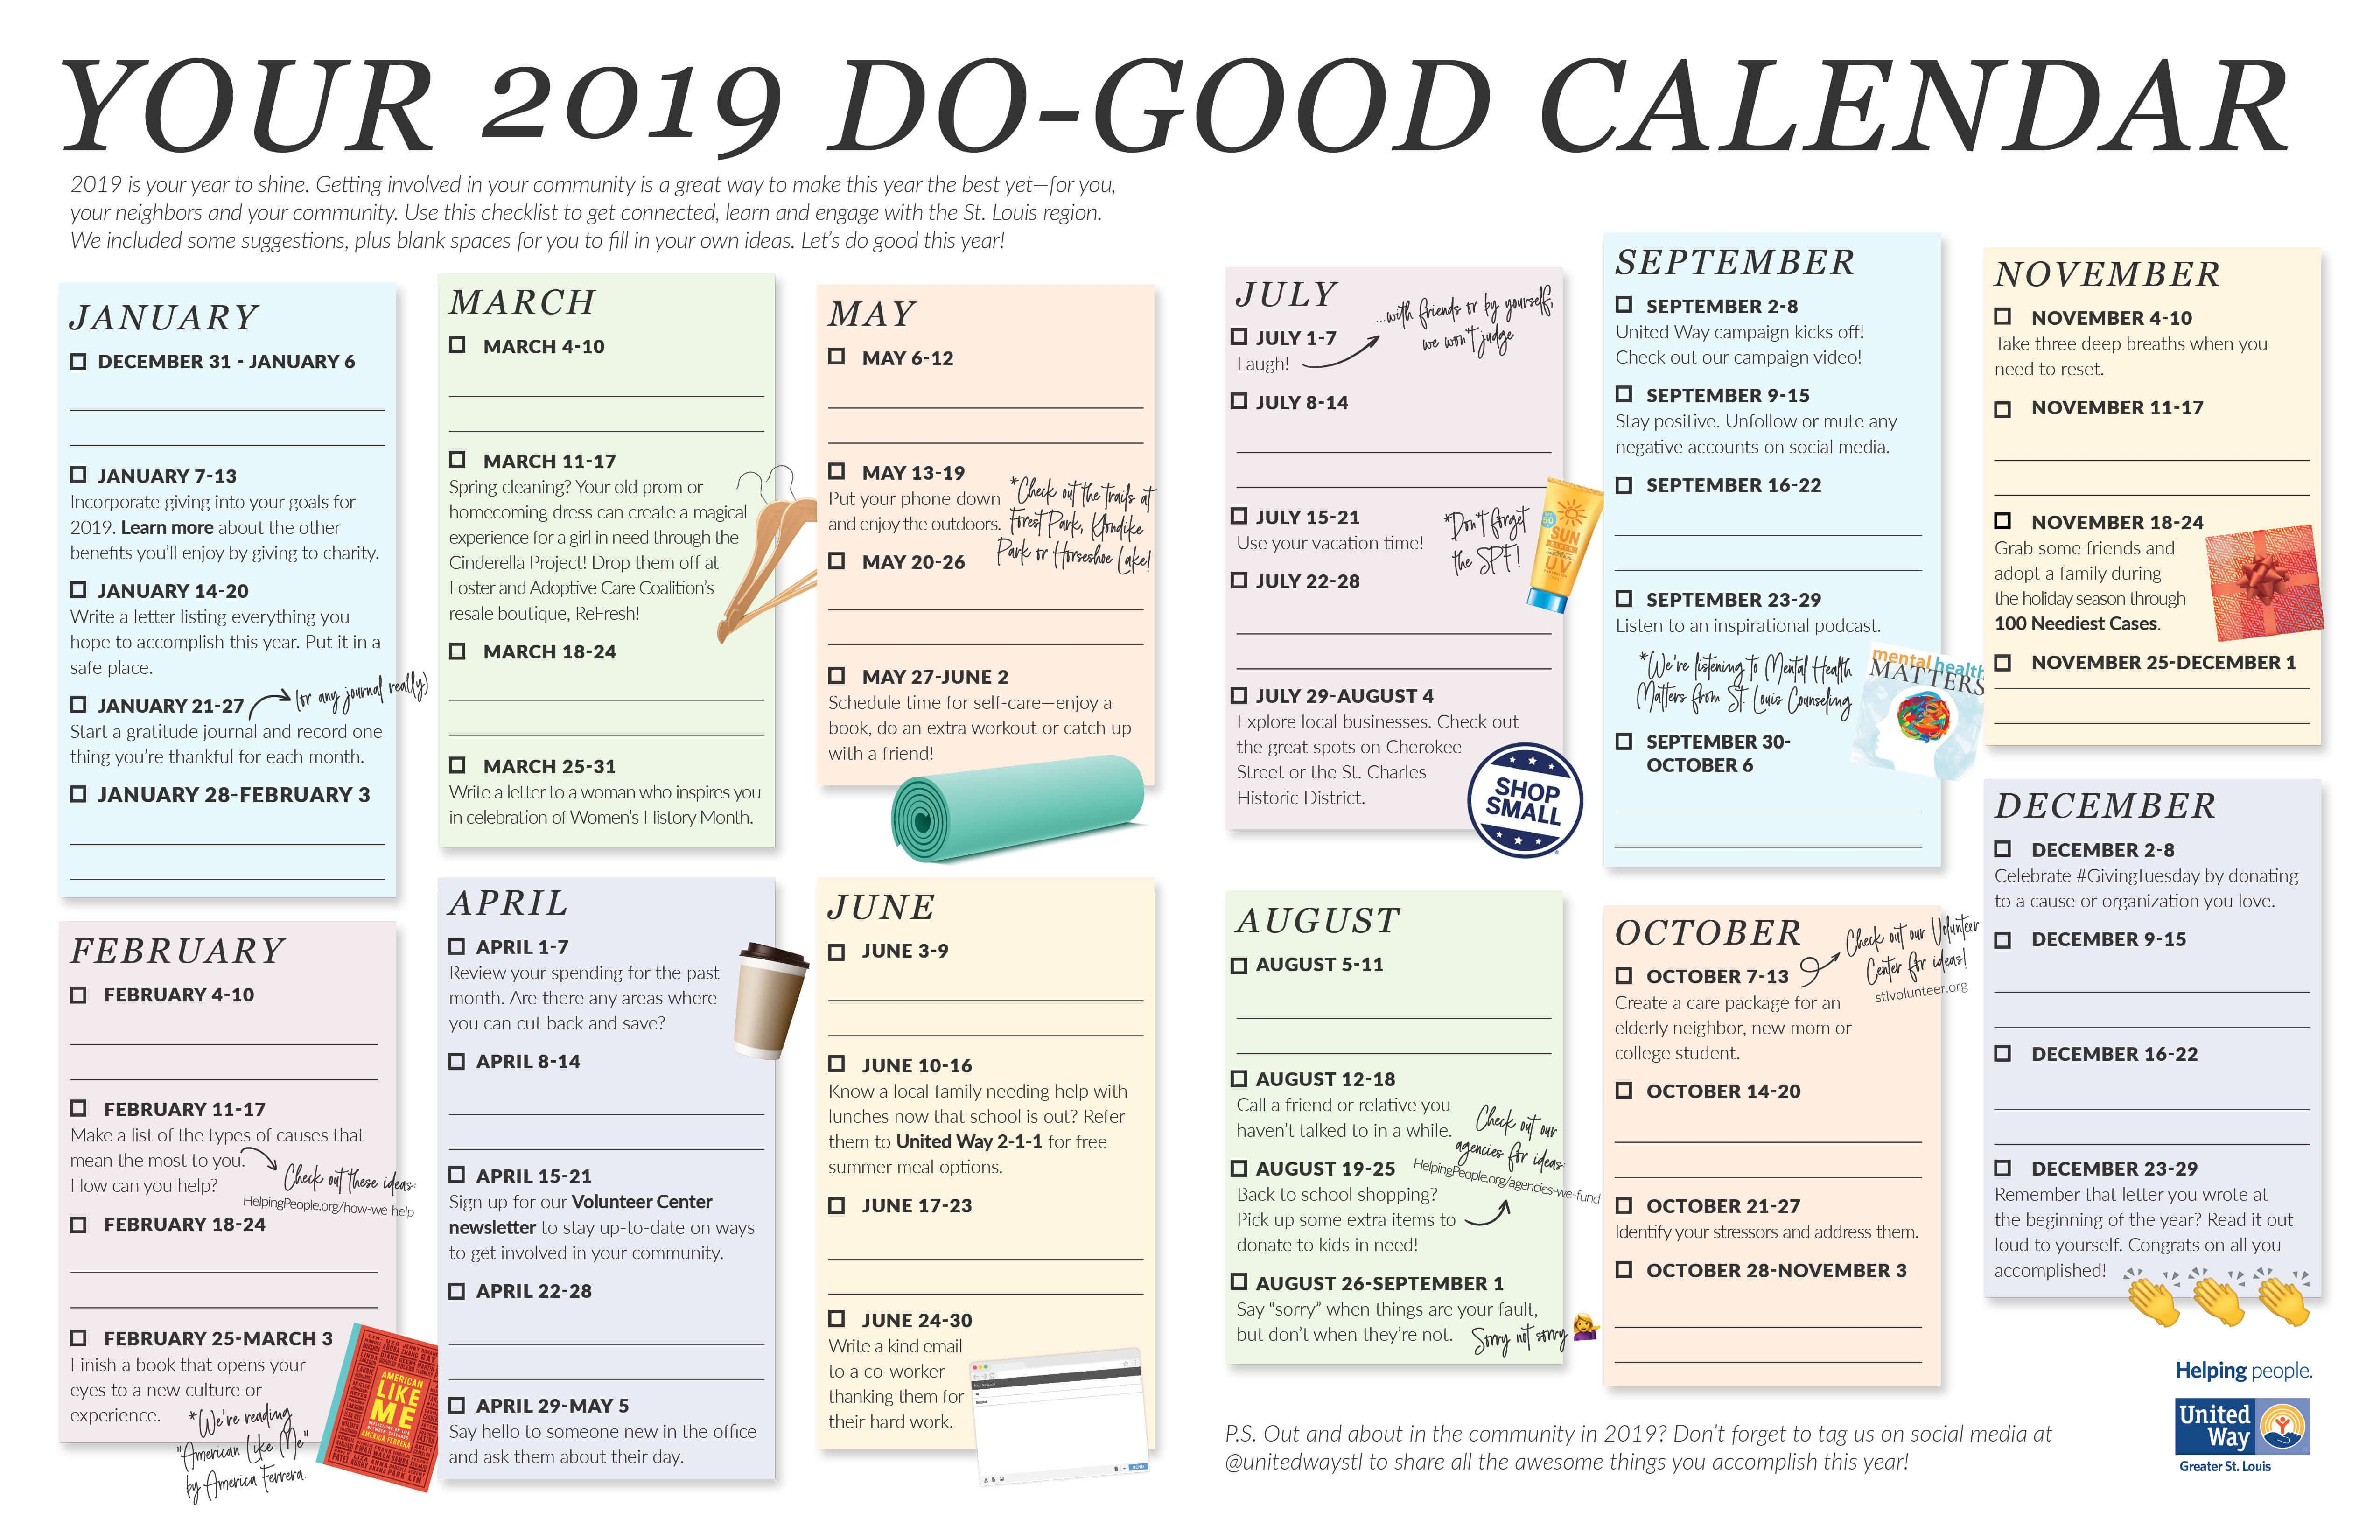 Your 2019 Do Good Calendar | United Way Greater St. Louis Calendar 2019 Fill In